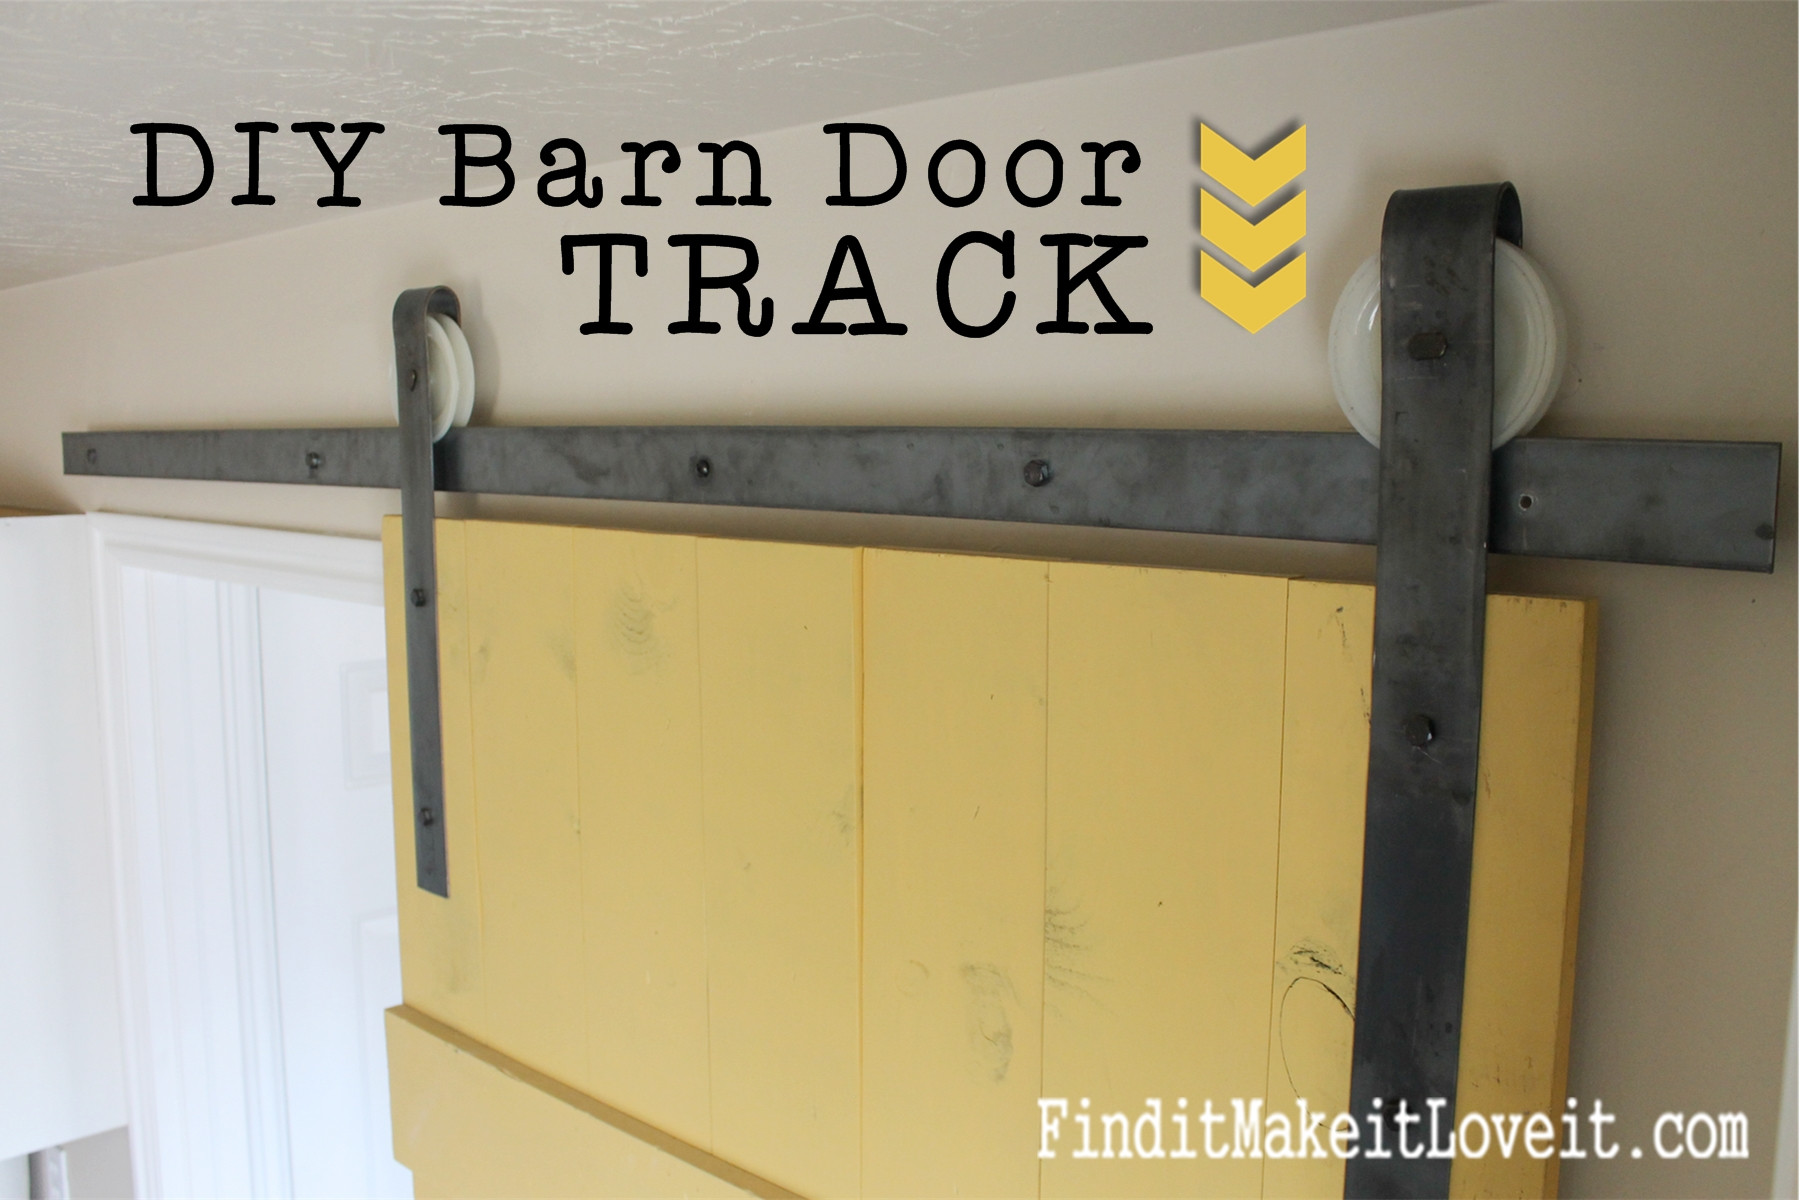 Best ideas about DIY Barn Door Tracks . Save or Pin DIY Barn Door Track Find it Make it Love it Now.